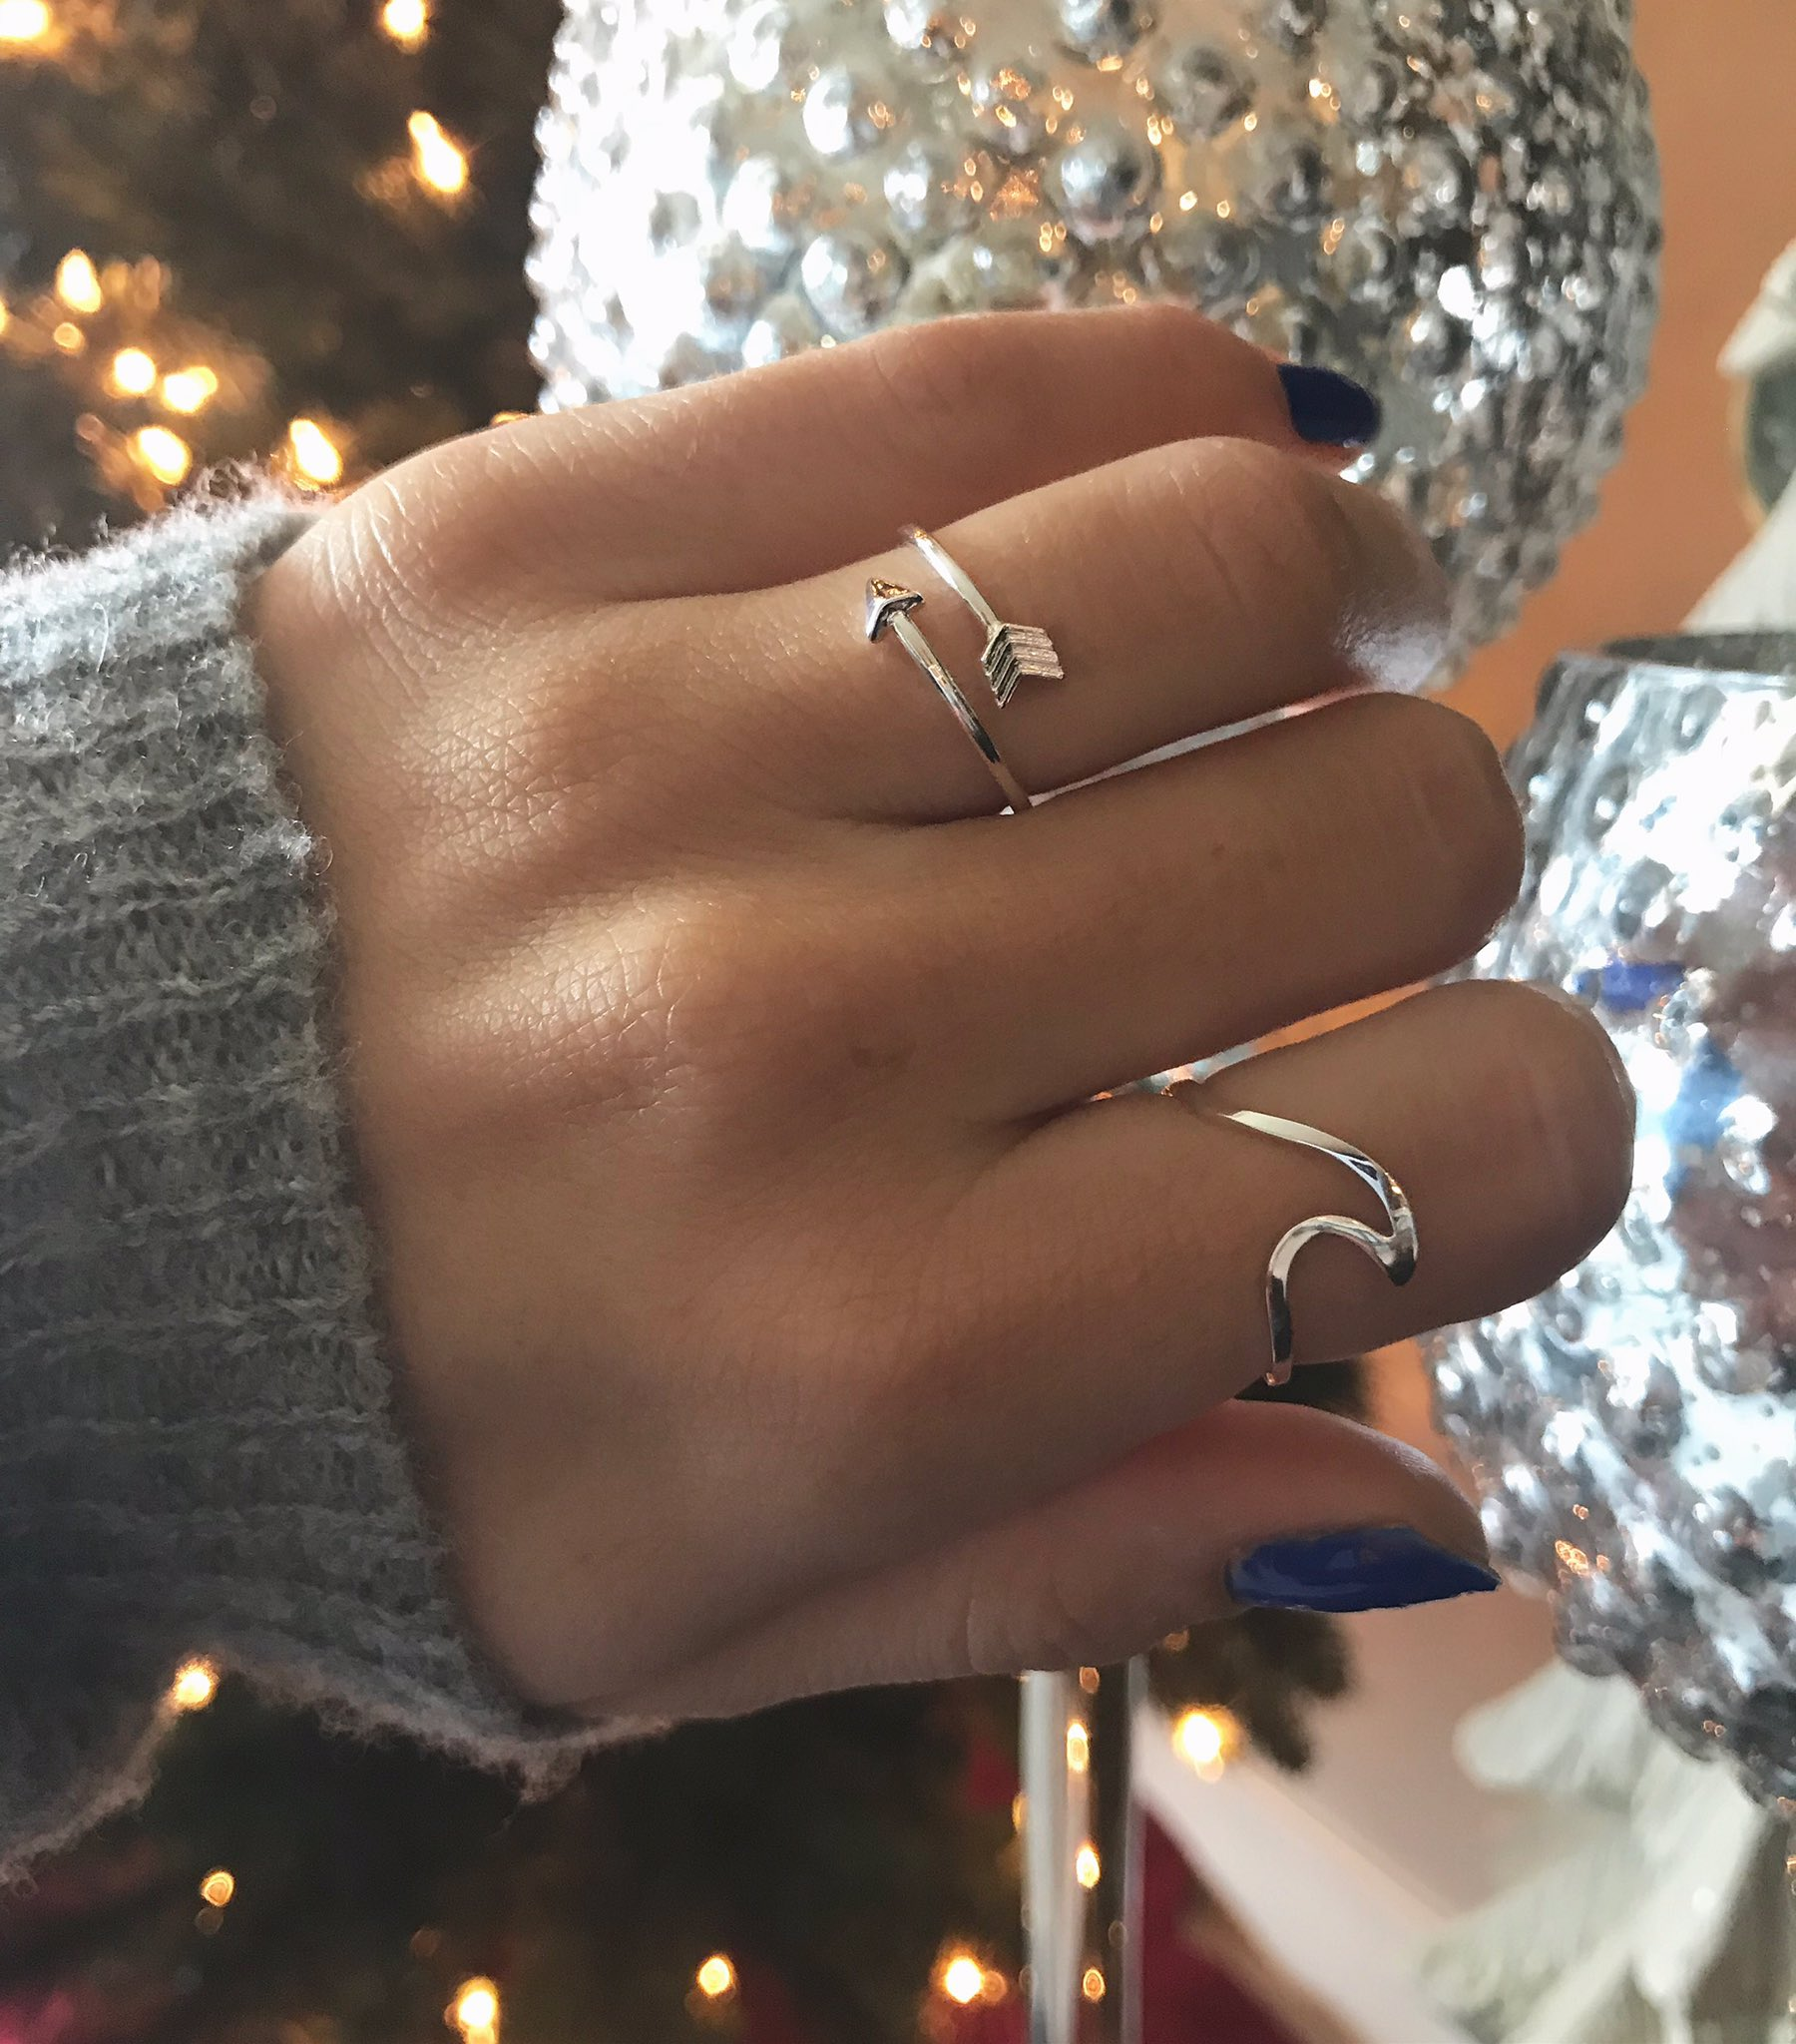 Literally obsessed with this Ring bundle from https://t.co/6ikehUSuU2 https://t.co/9cEoOfK5dm